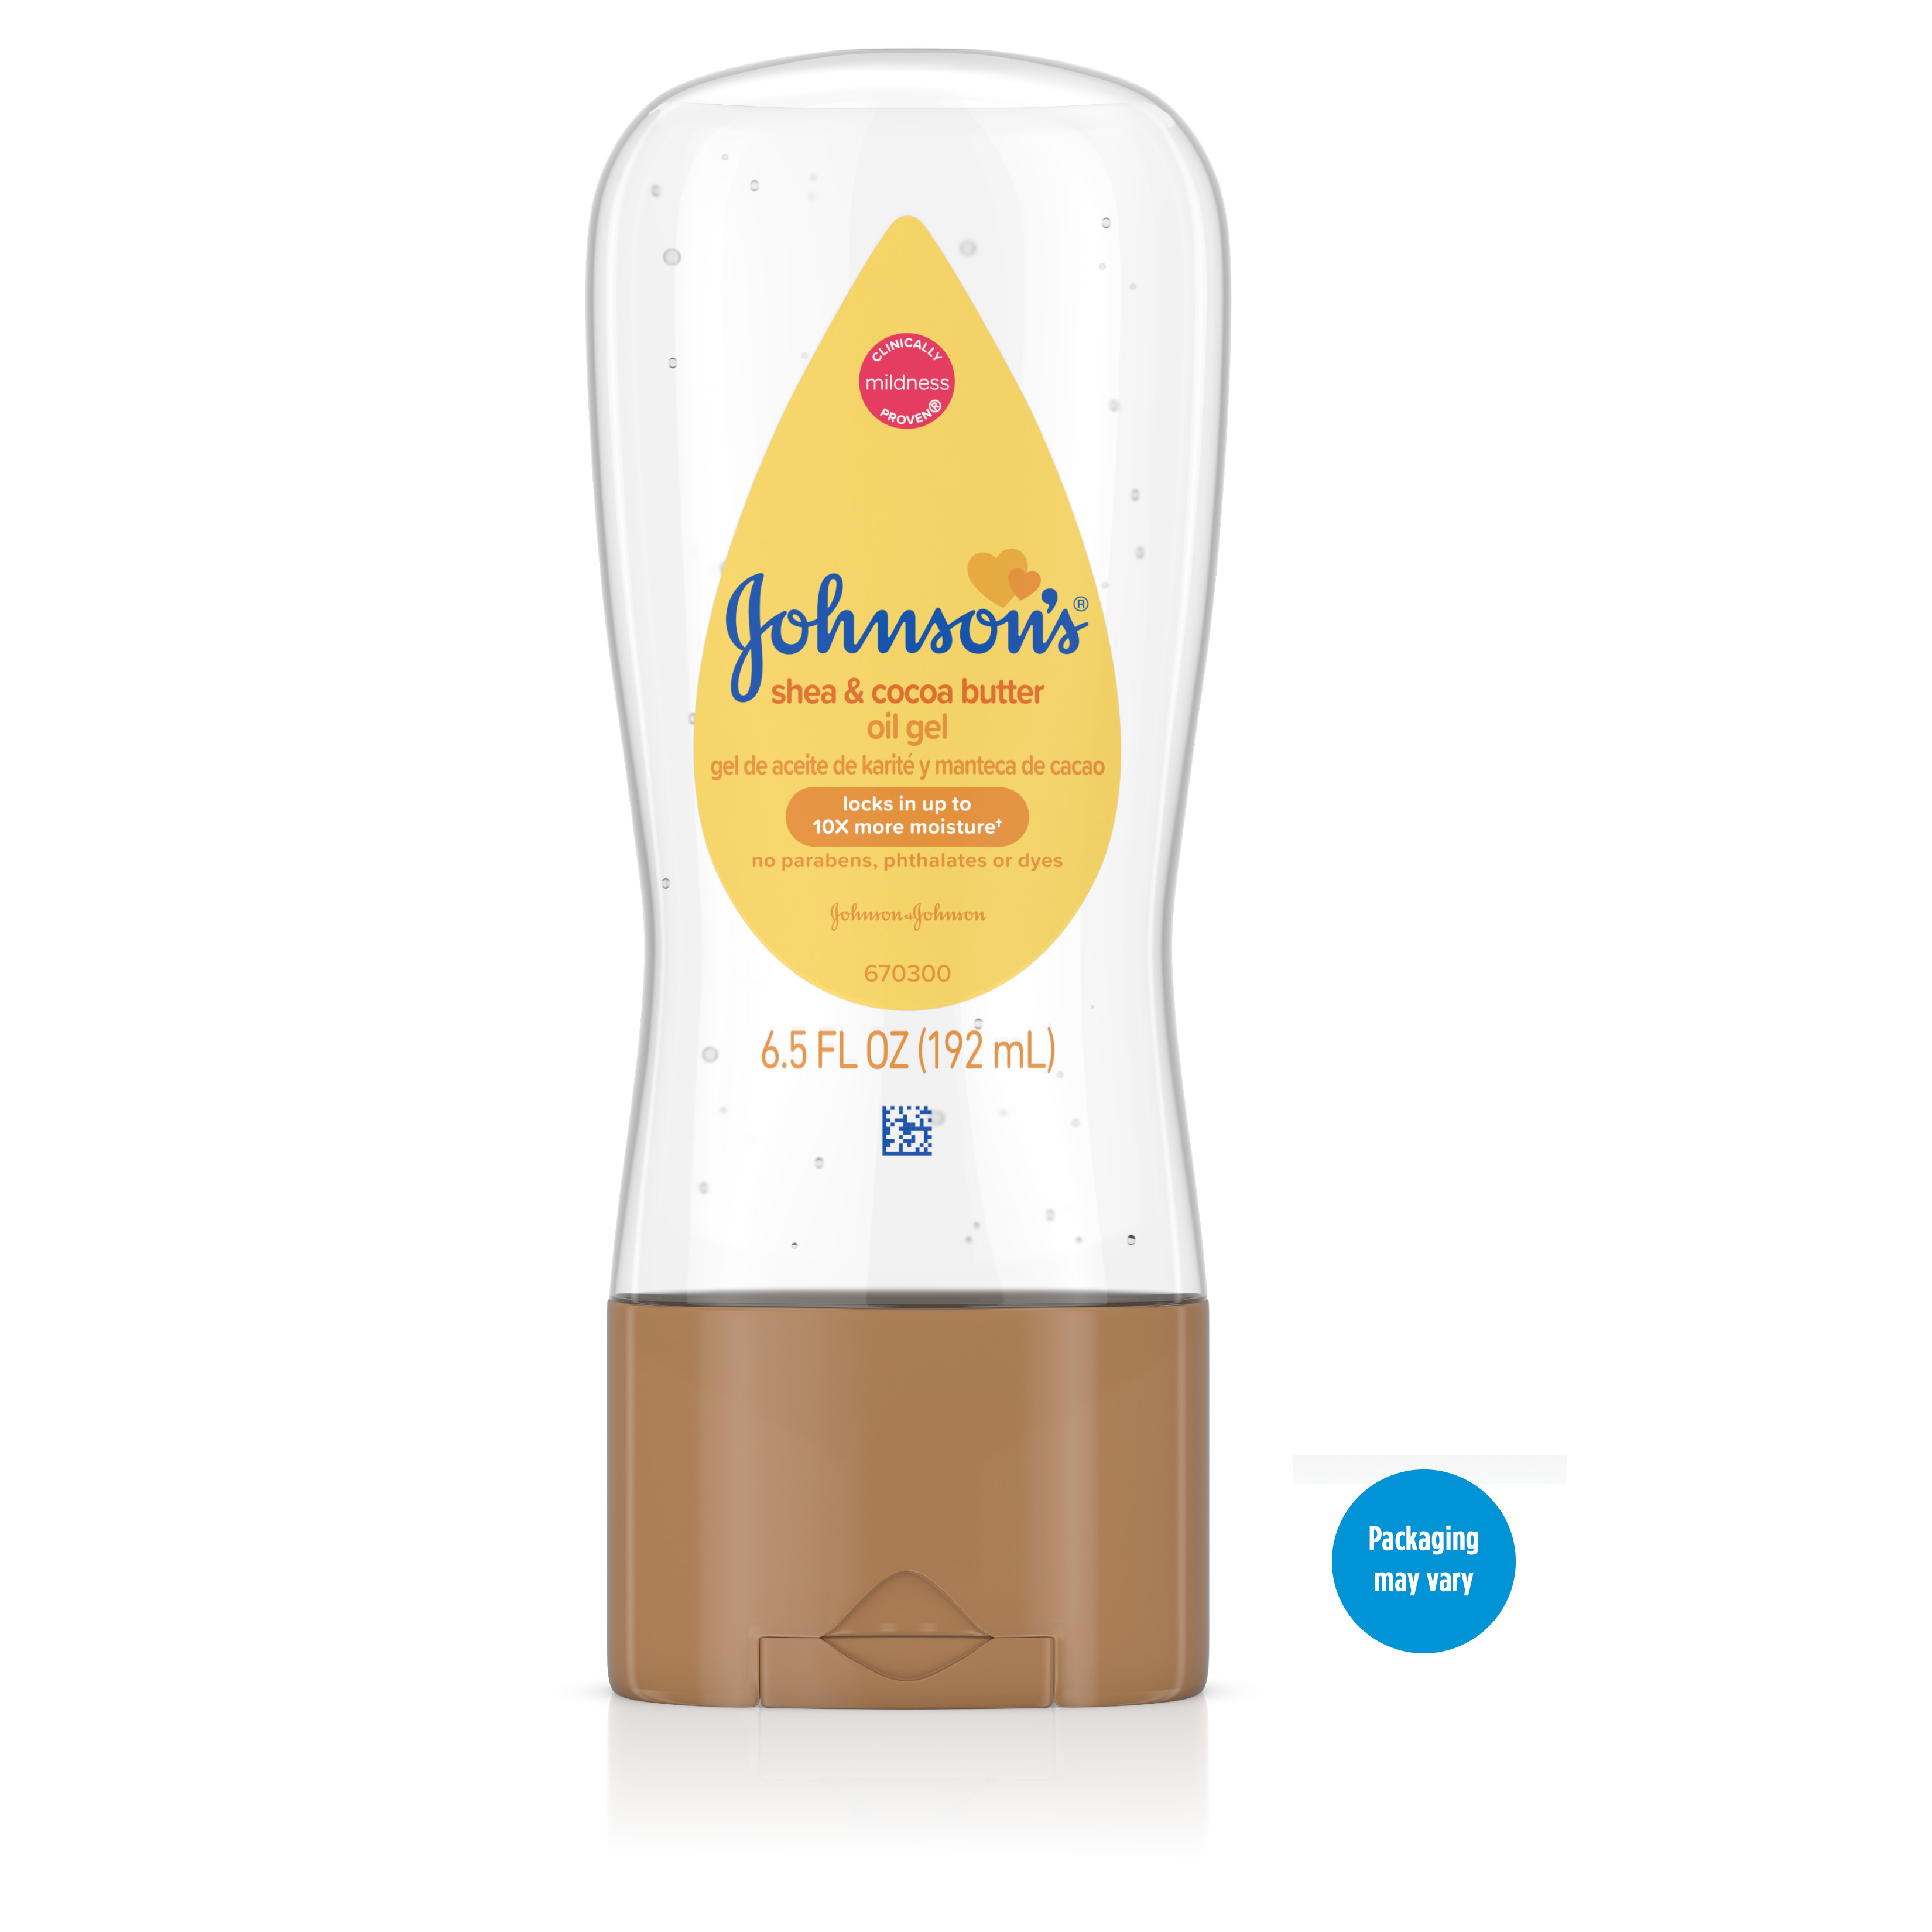 Johnson's Baby Oil Gel with Shea & Cocoa Butter, 6.5 fl. oz